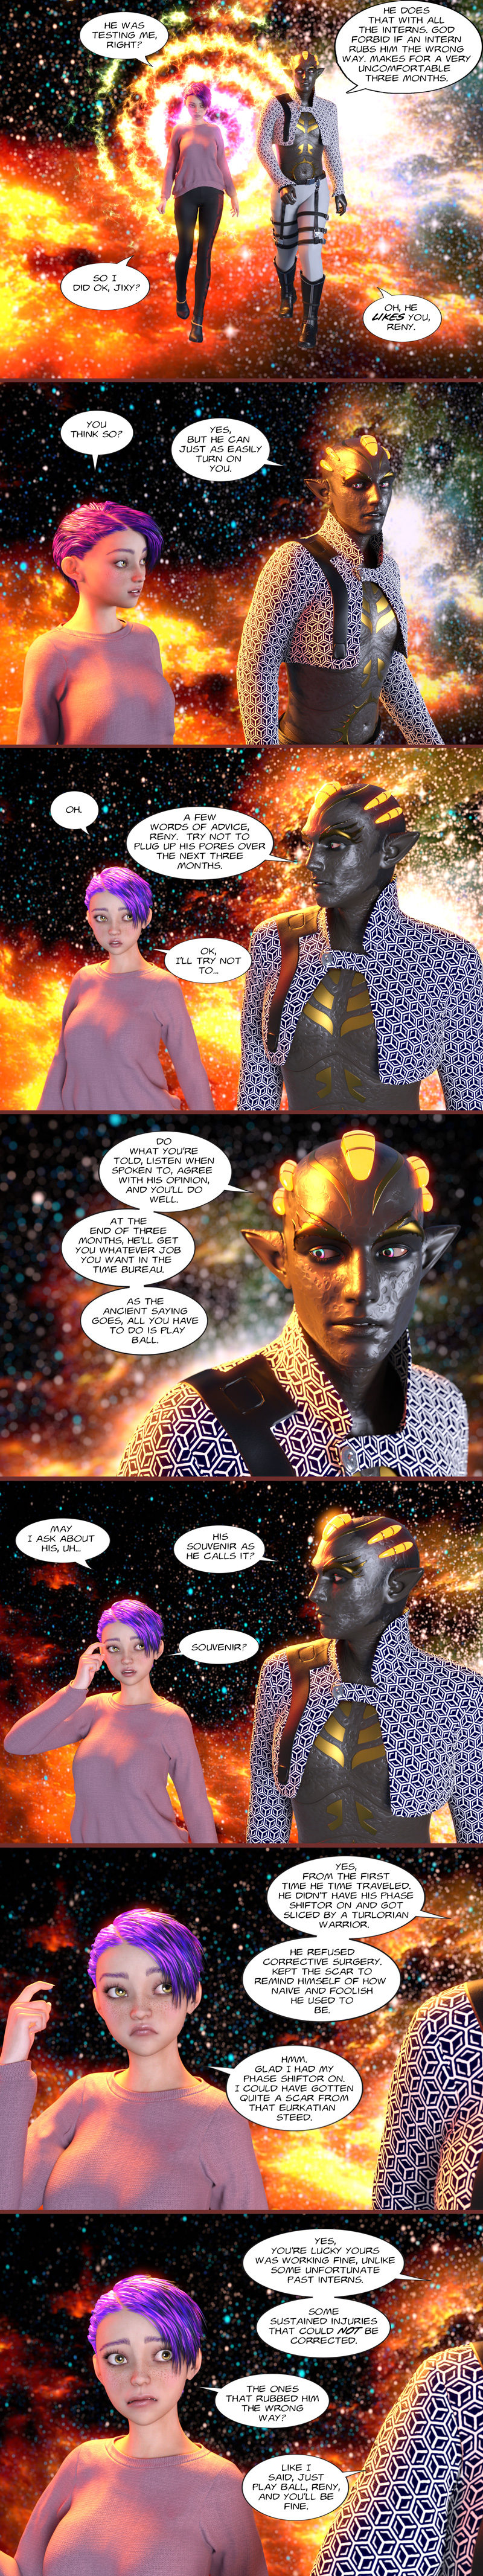 Chapter 19, page 11 – Oh he likes you, Reny